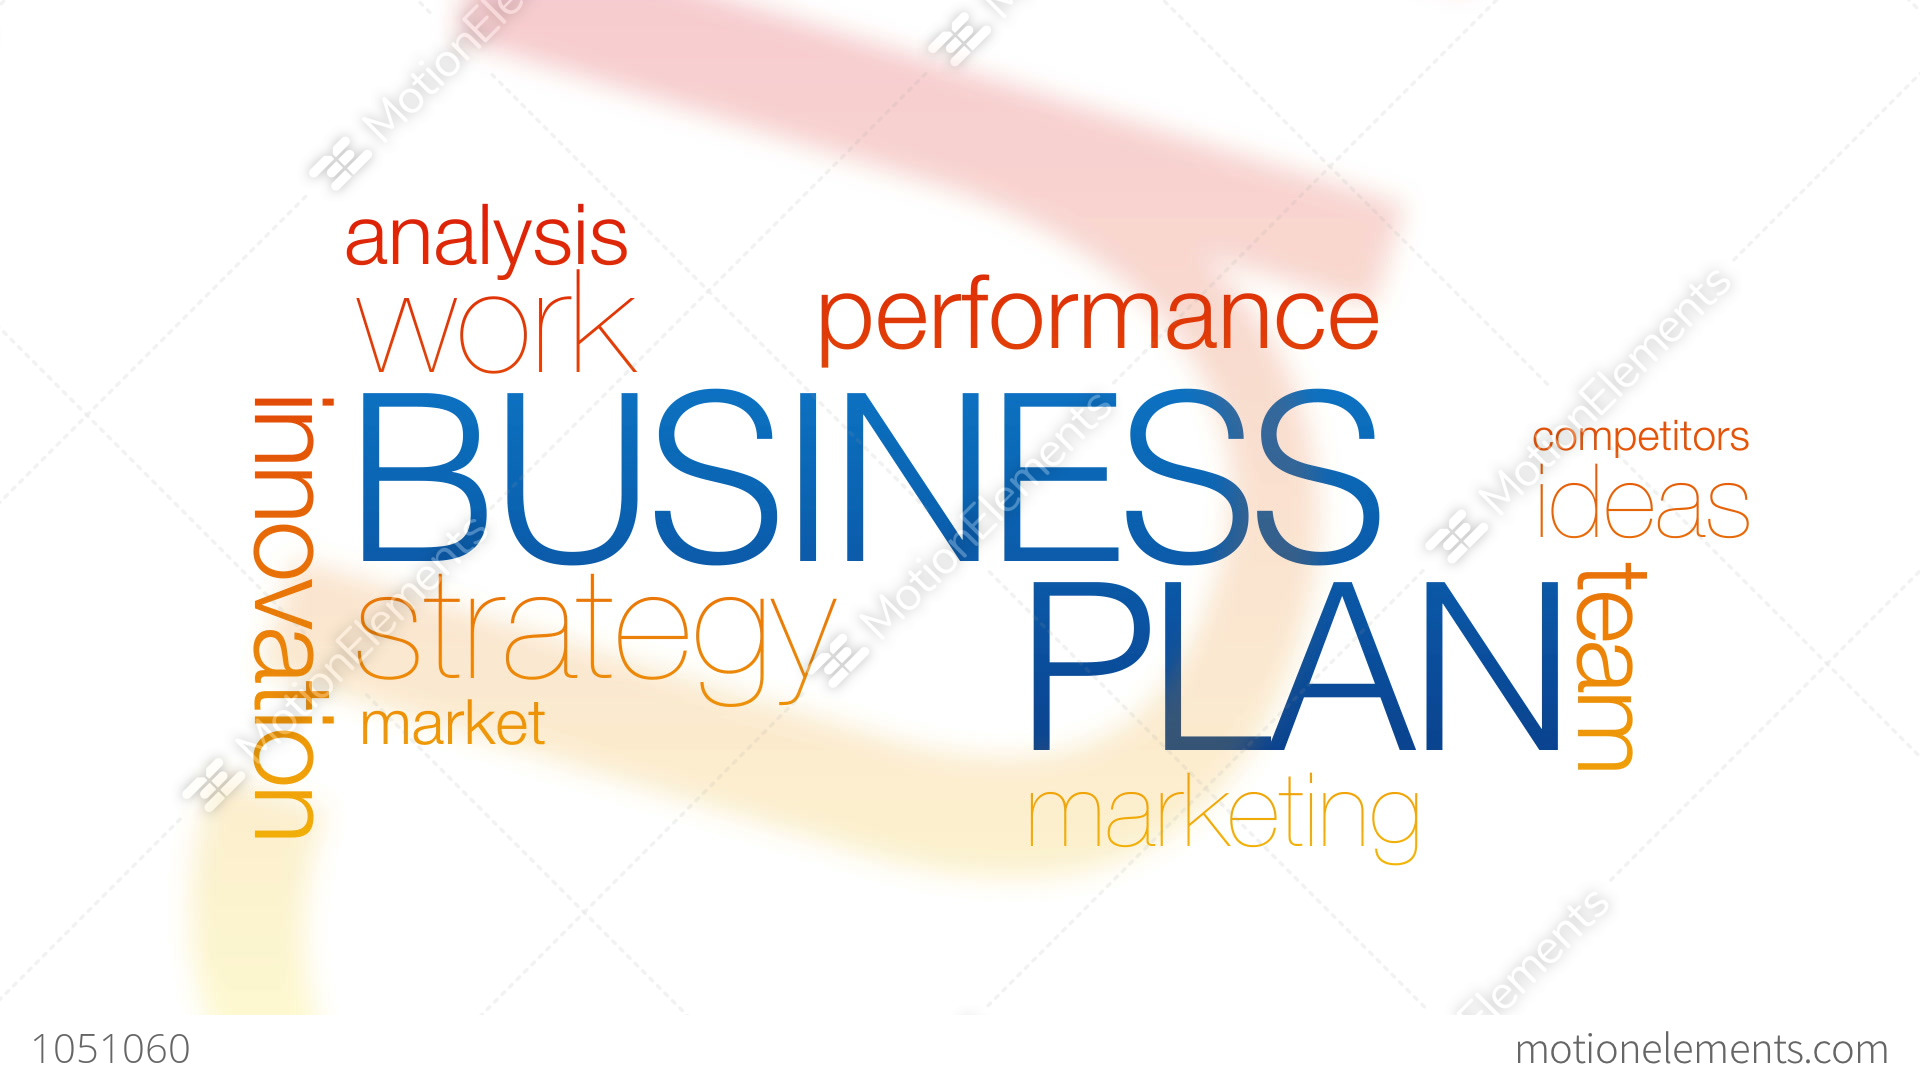 Developing the Library Business Plan